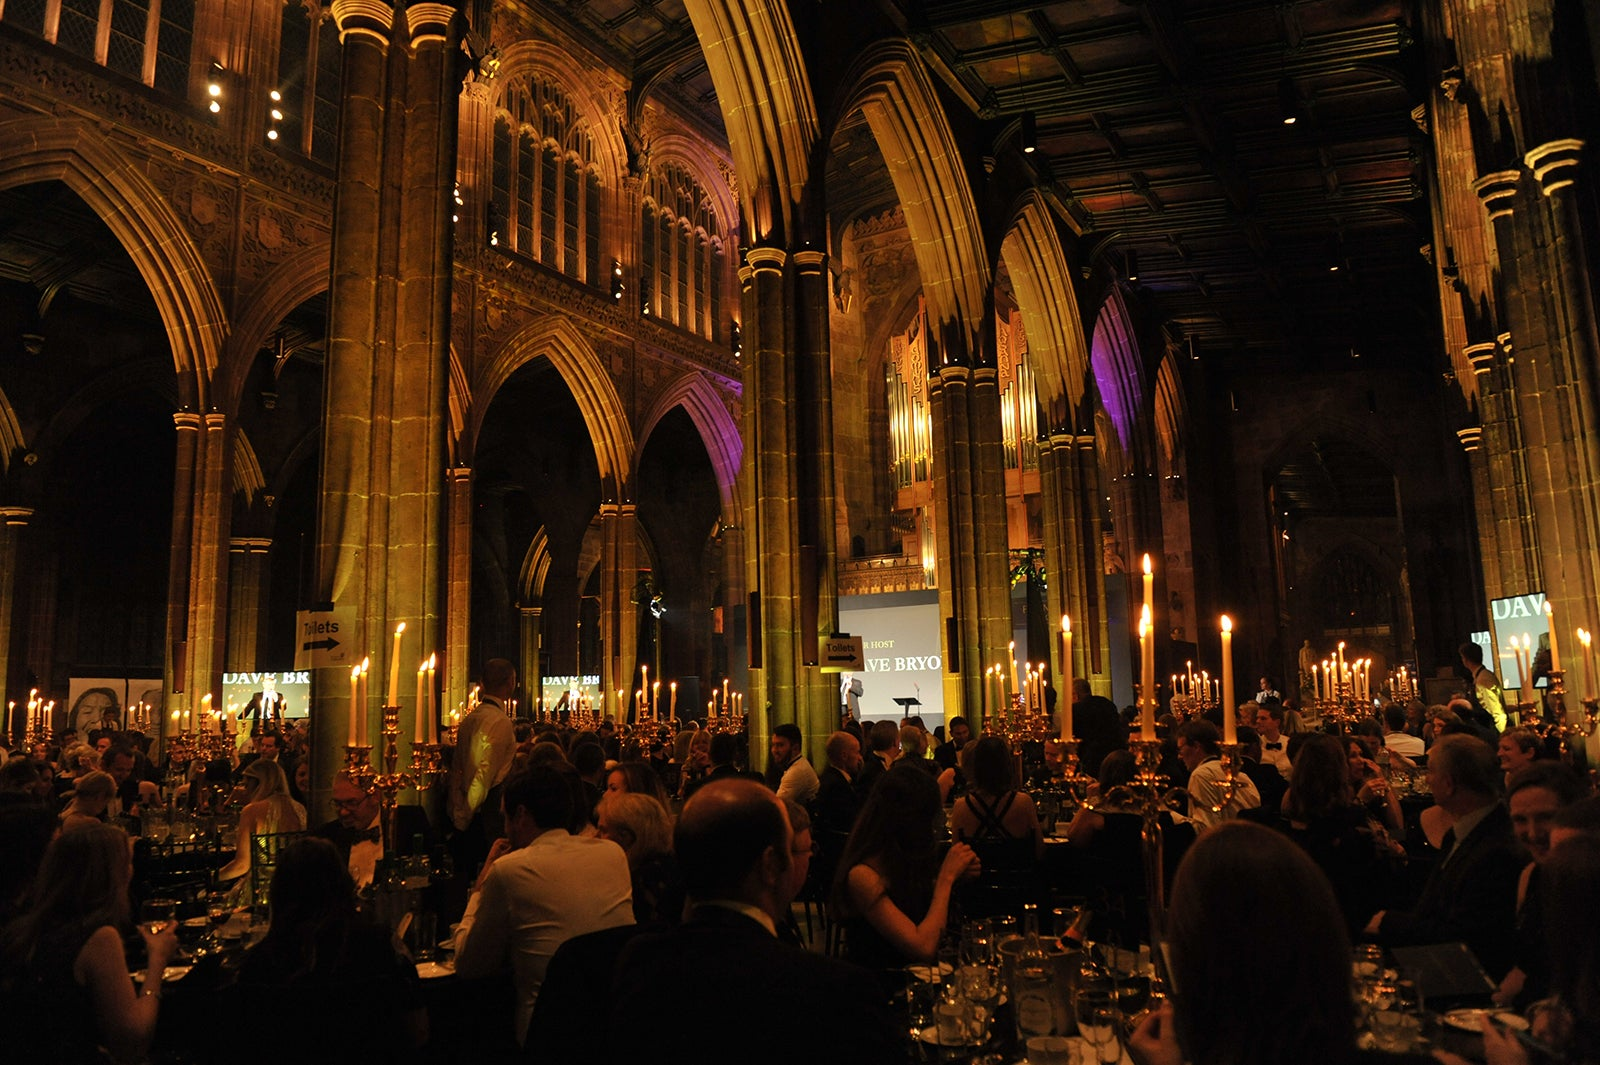 Finance Awards North West evening ceremony three course dinner in candle-lit manchester cathedral in city centre